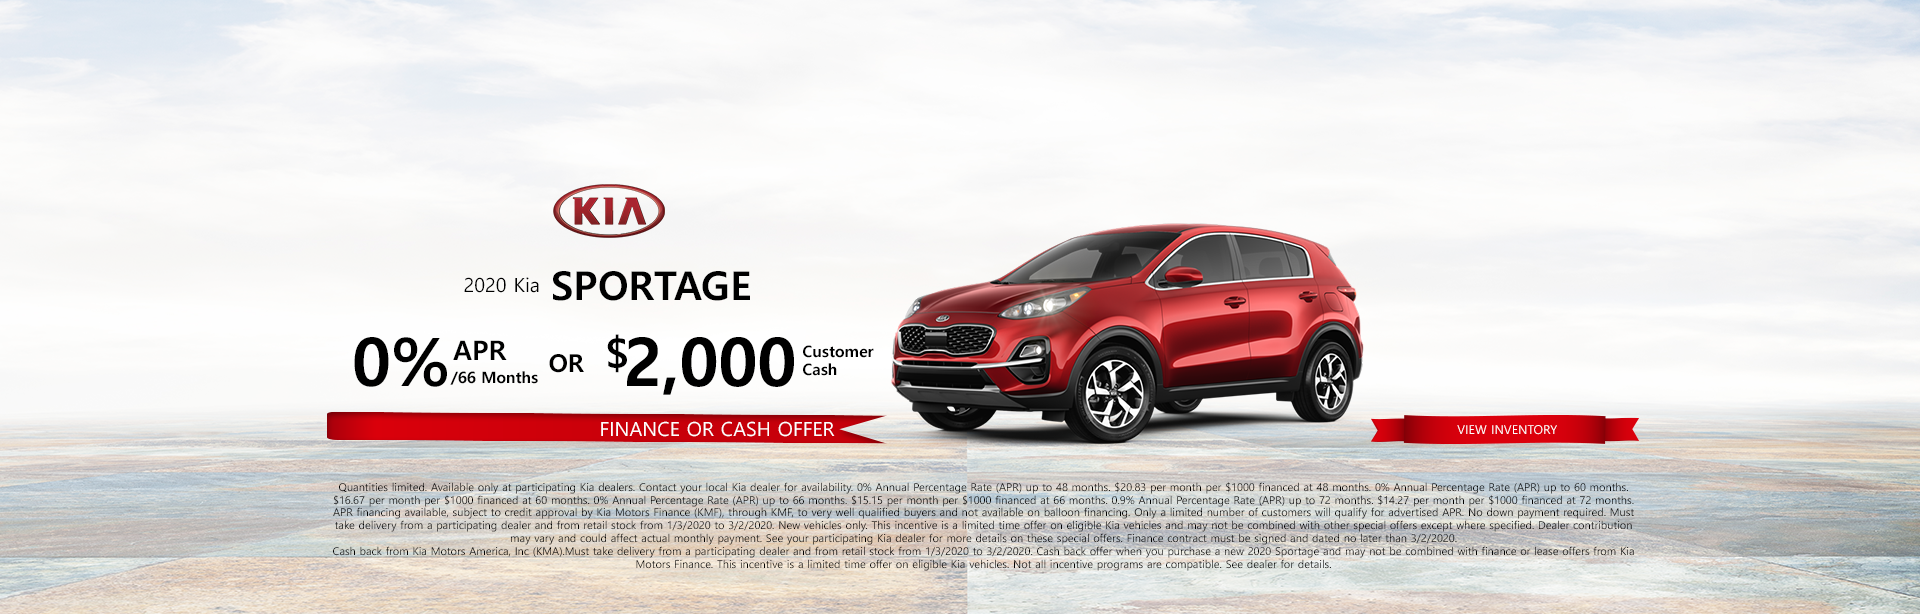 Kia Sportage Southwest Cash and Finance 202014